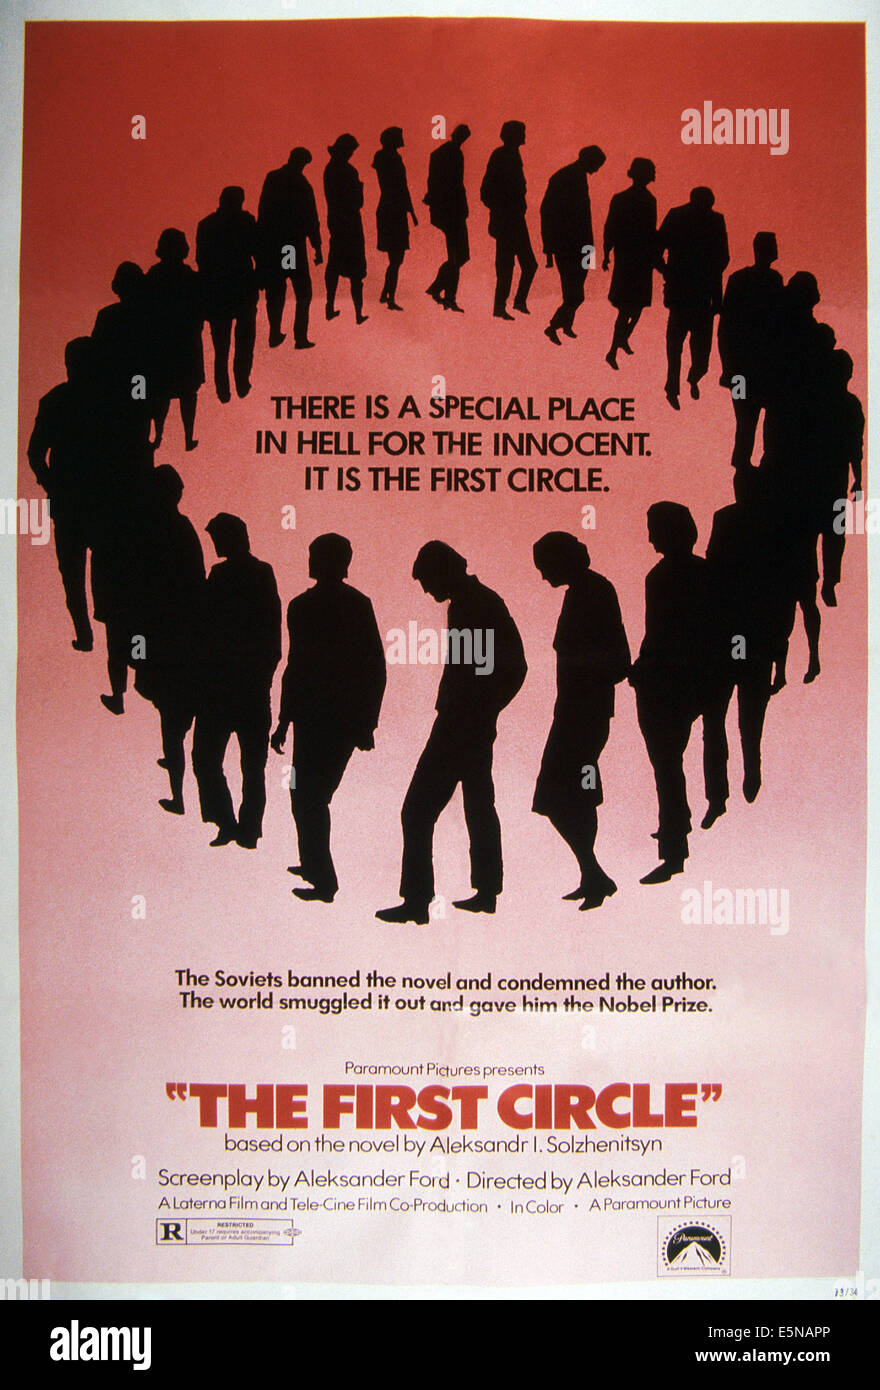 THE FIRST CIRCLE, 1973 - Stock Image